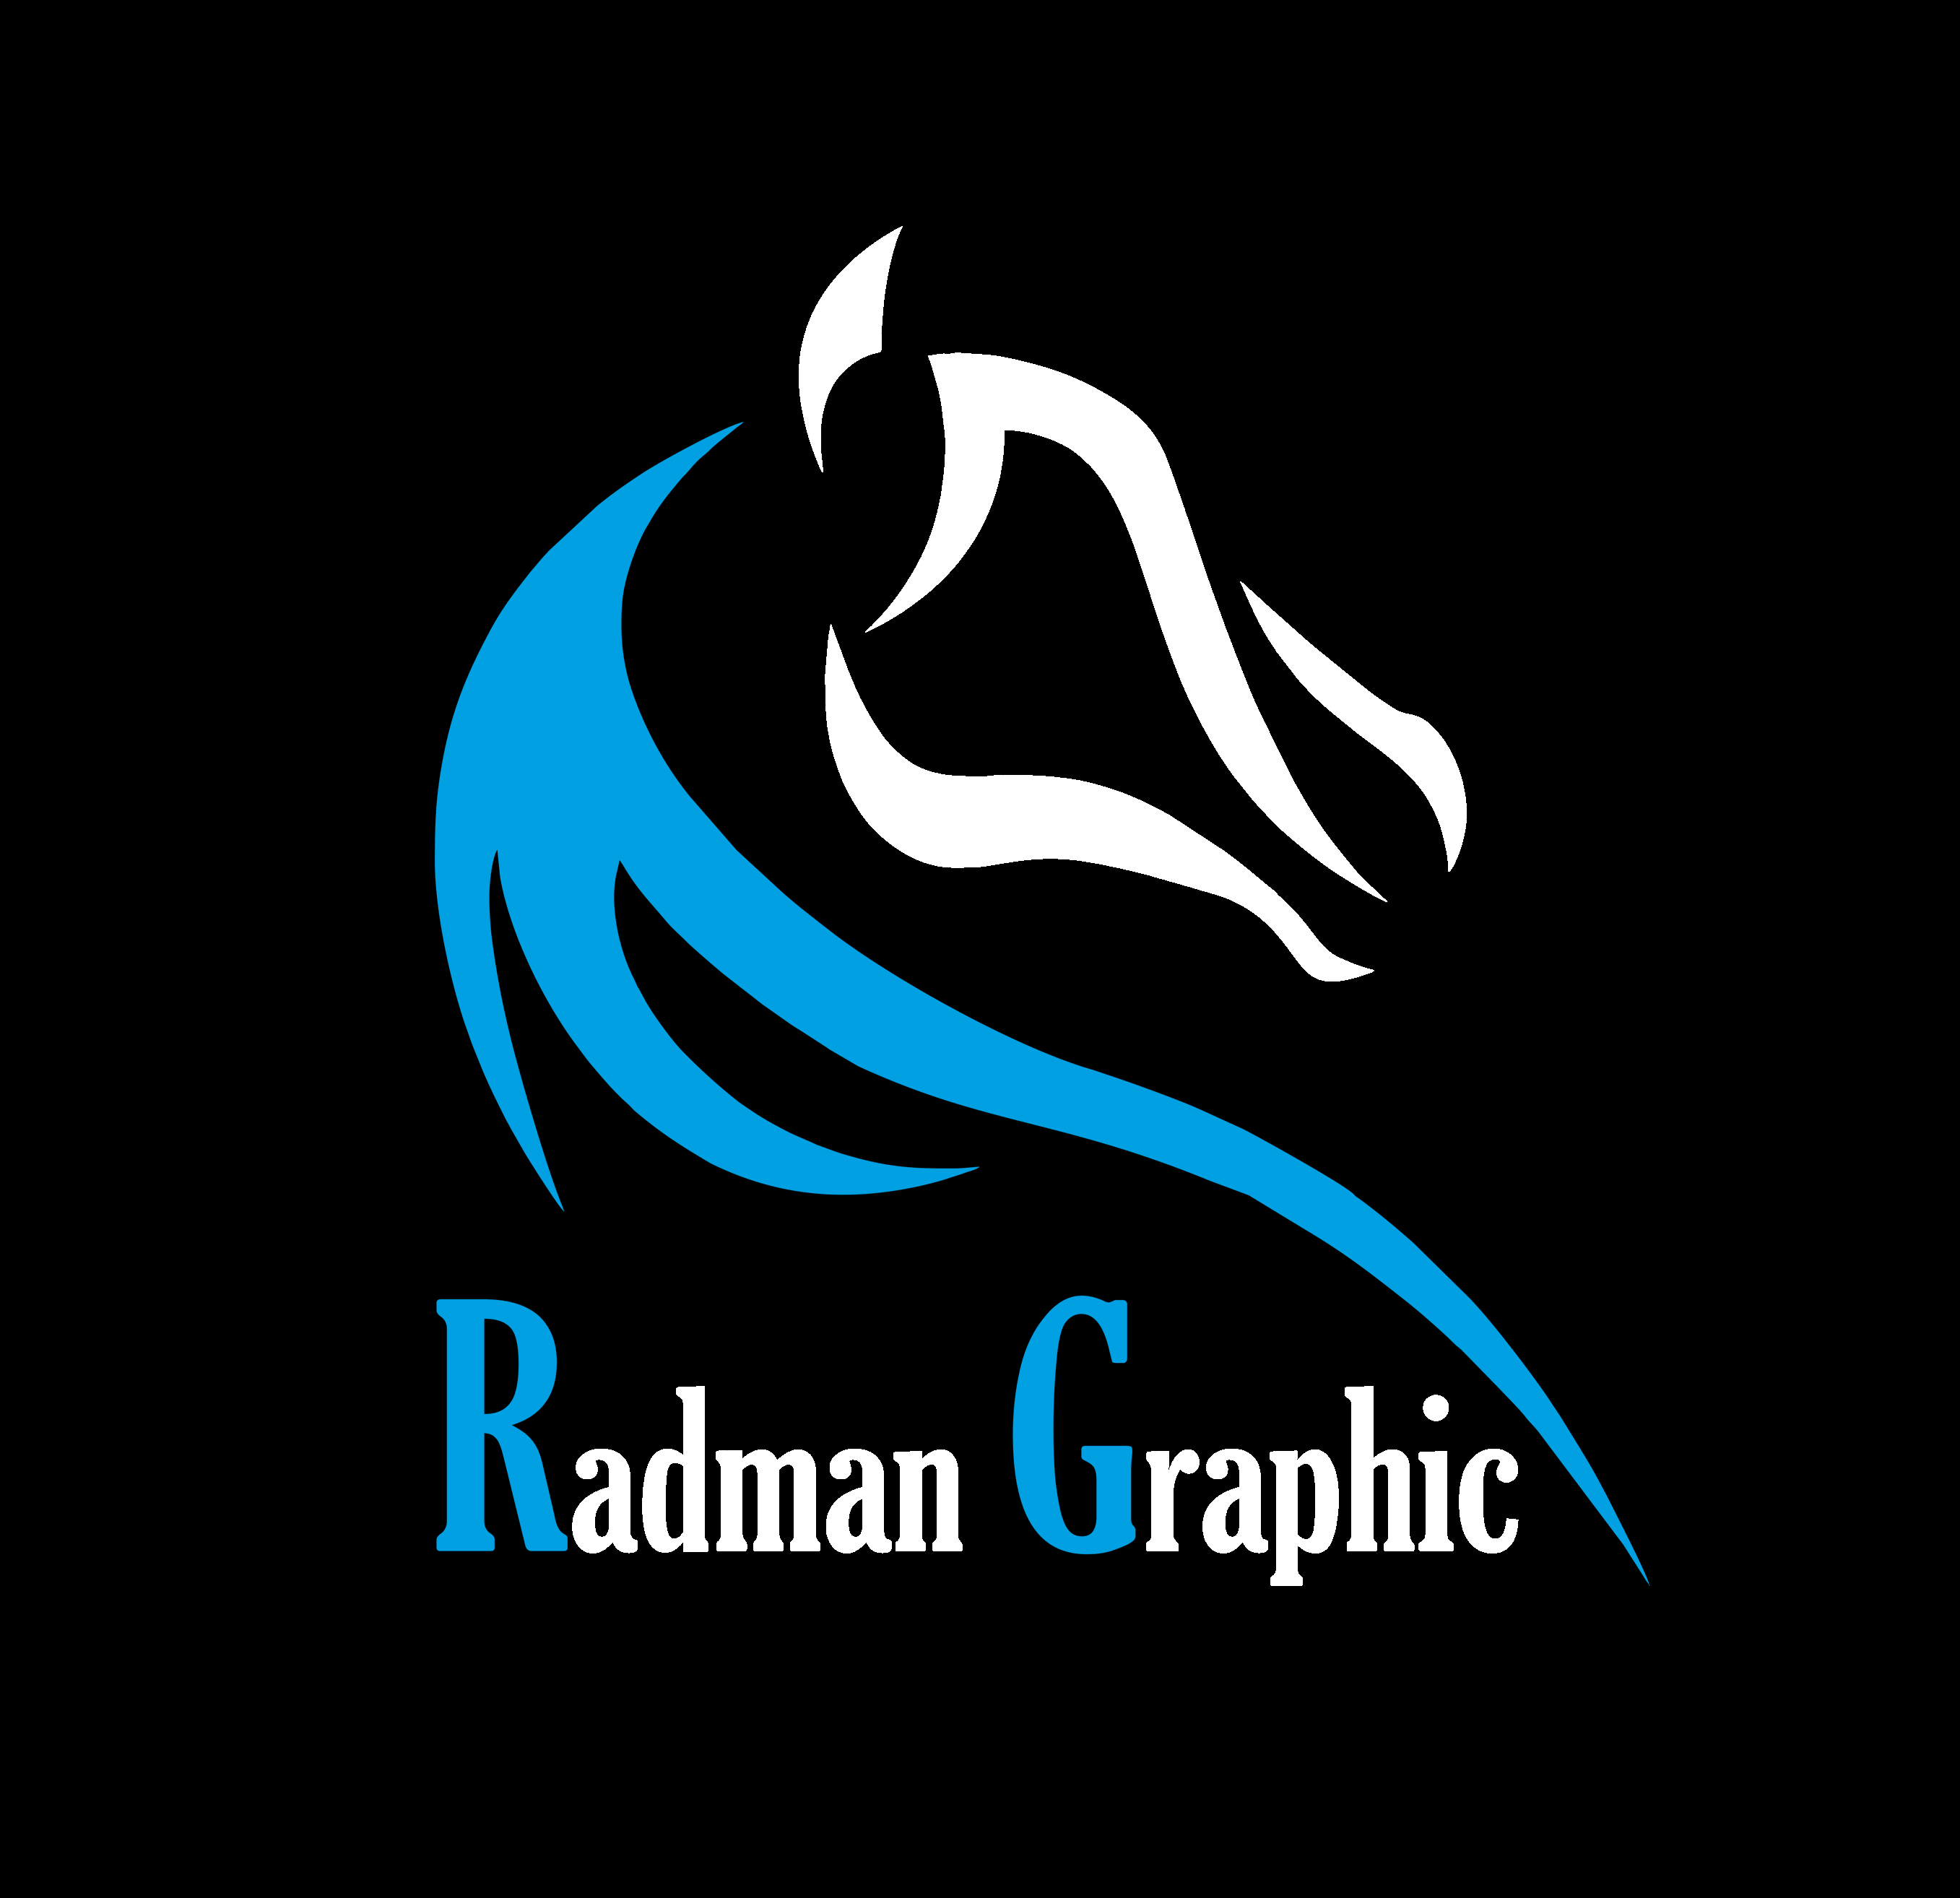 Radman Graphic